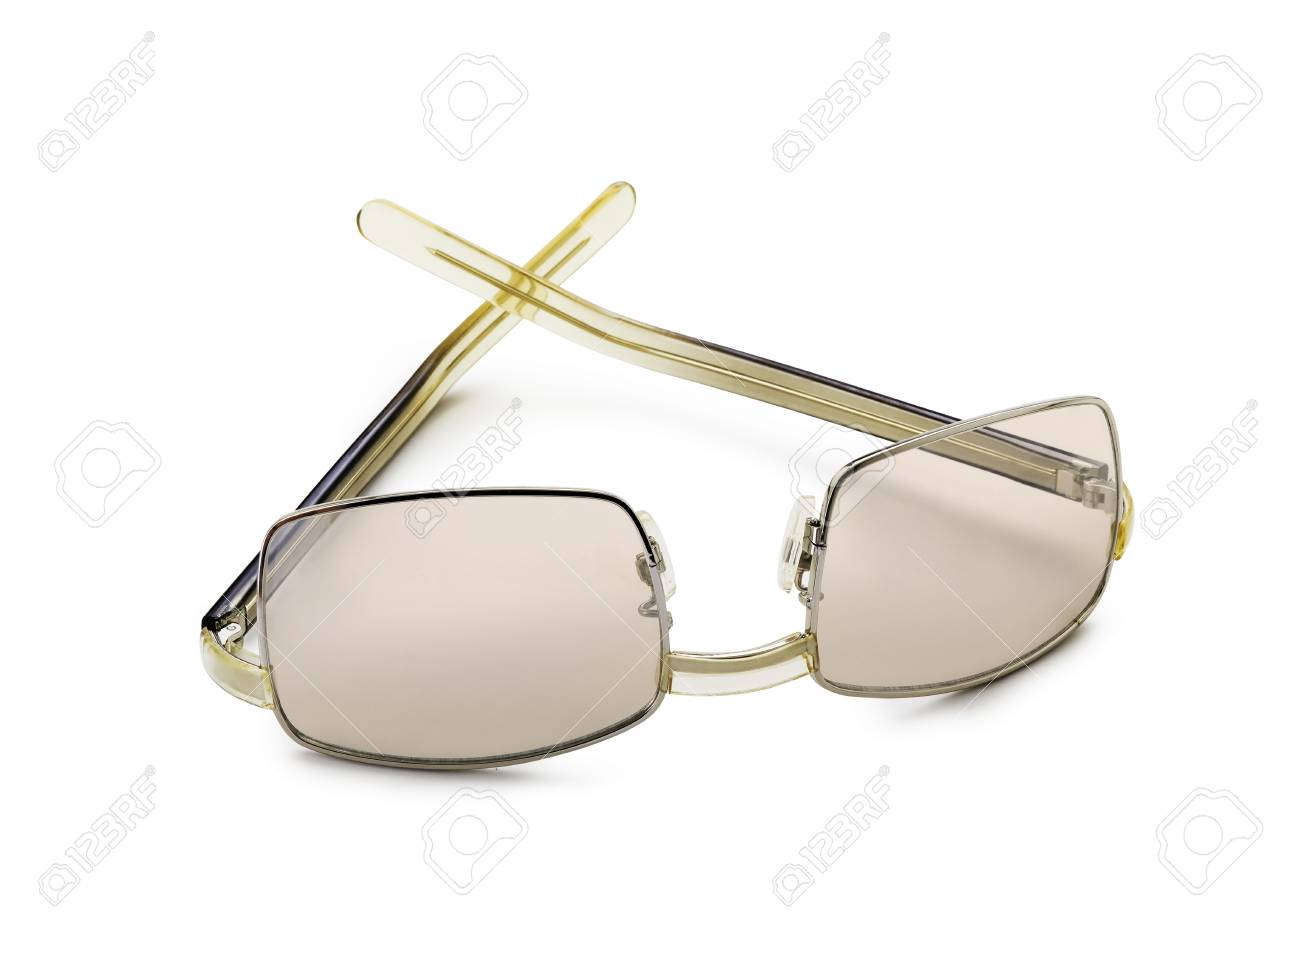 Brown sunglasses isolated on the white background Stock Photo - 17364112